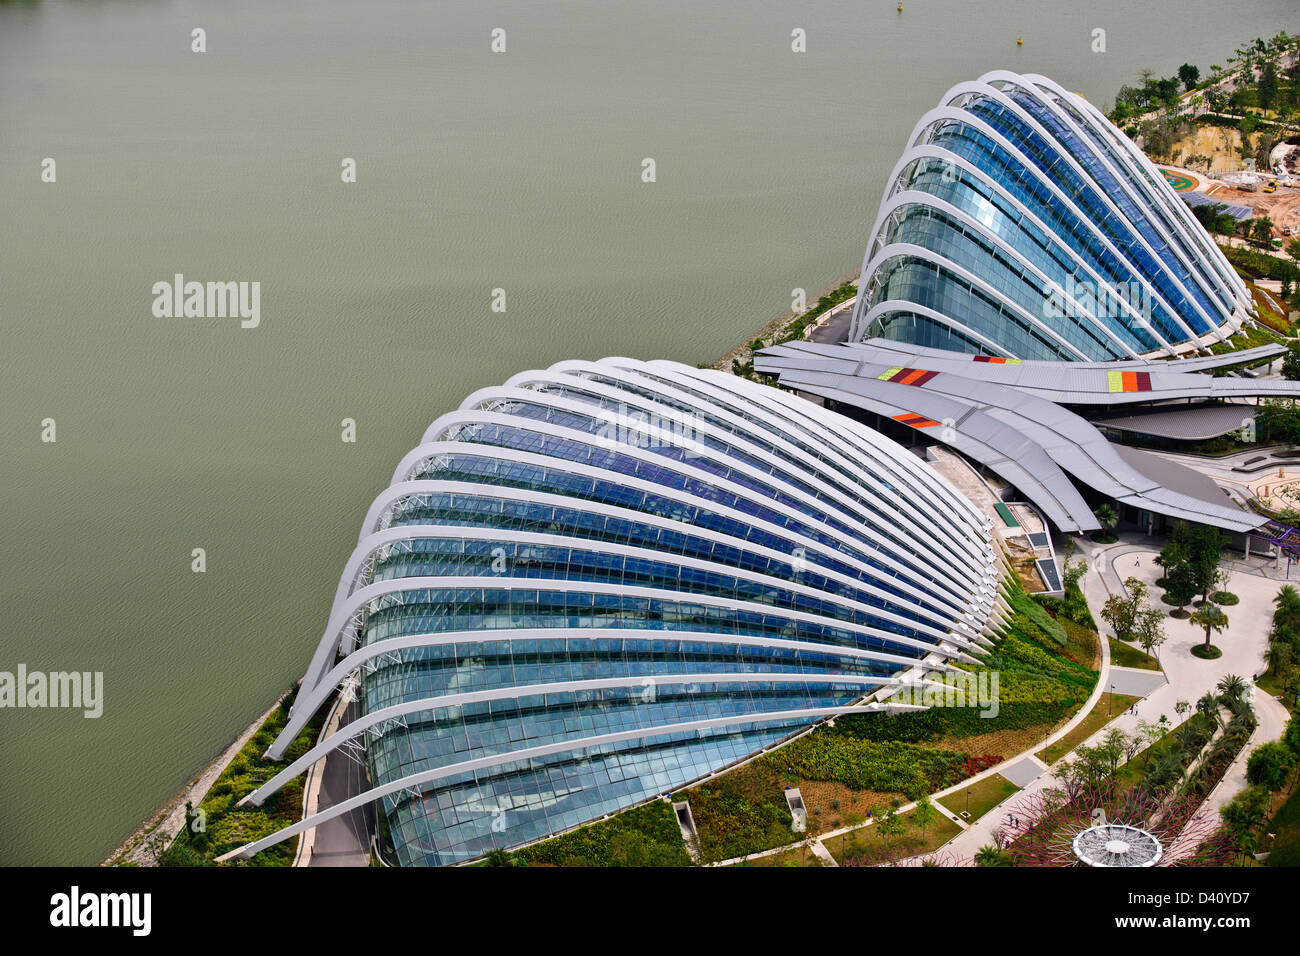 Garden By The Bay Flower Dome gardensthe bay in singapore including supertrees, and the